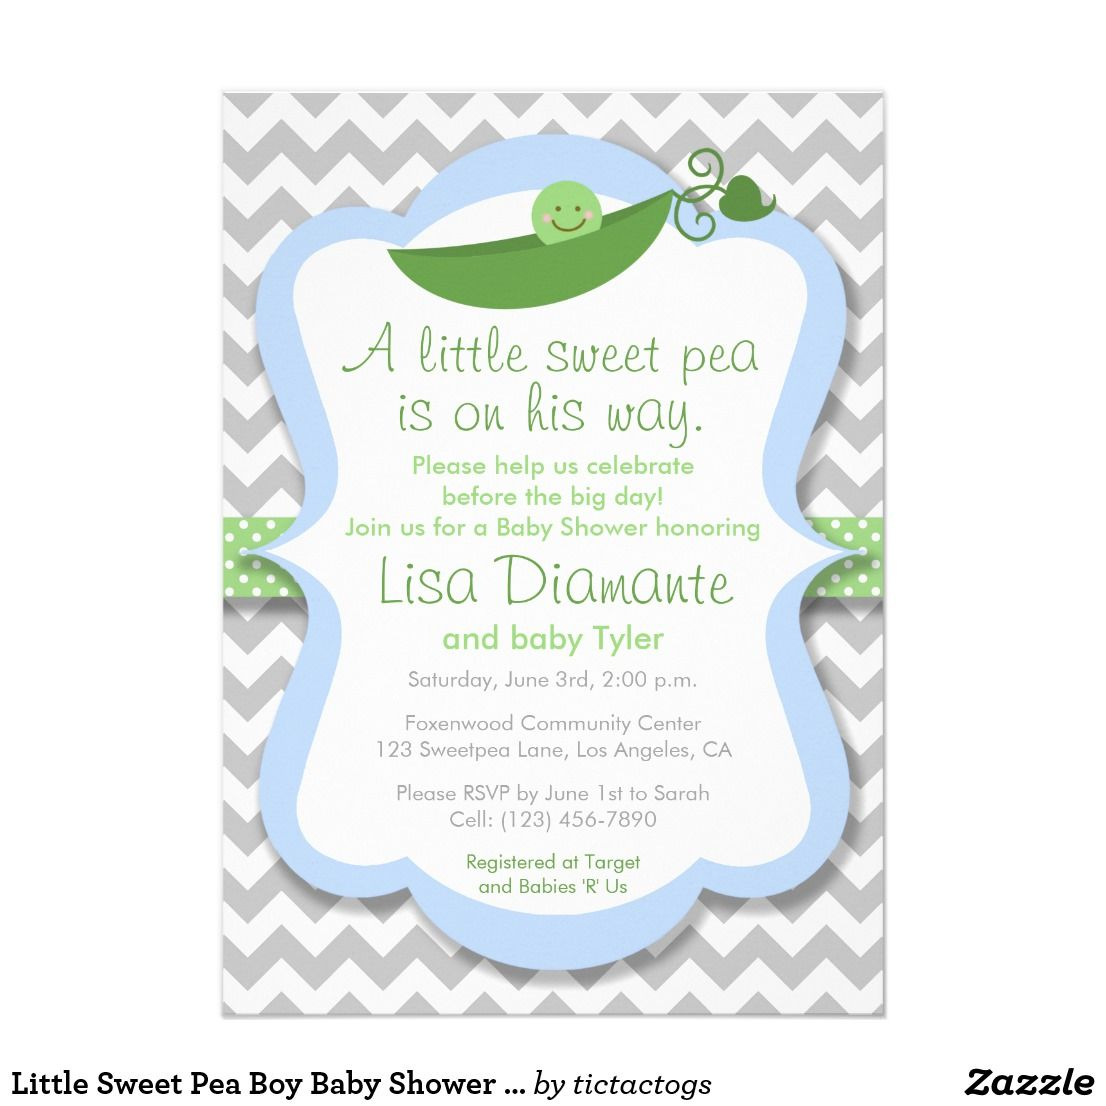 Little Sweet Pea Boy Baby Shower Invitation | Boy baby showers and ...